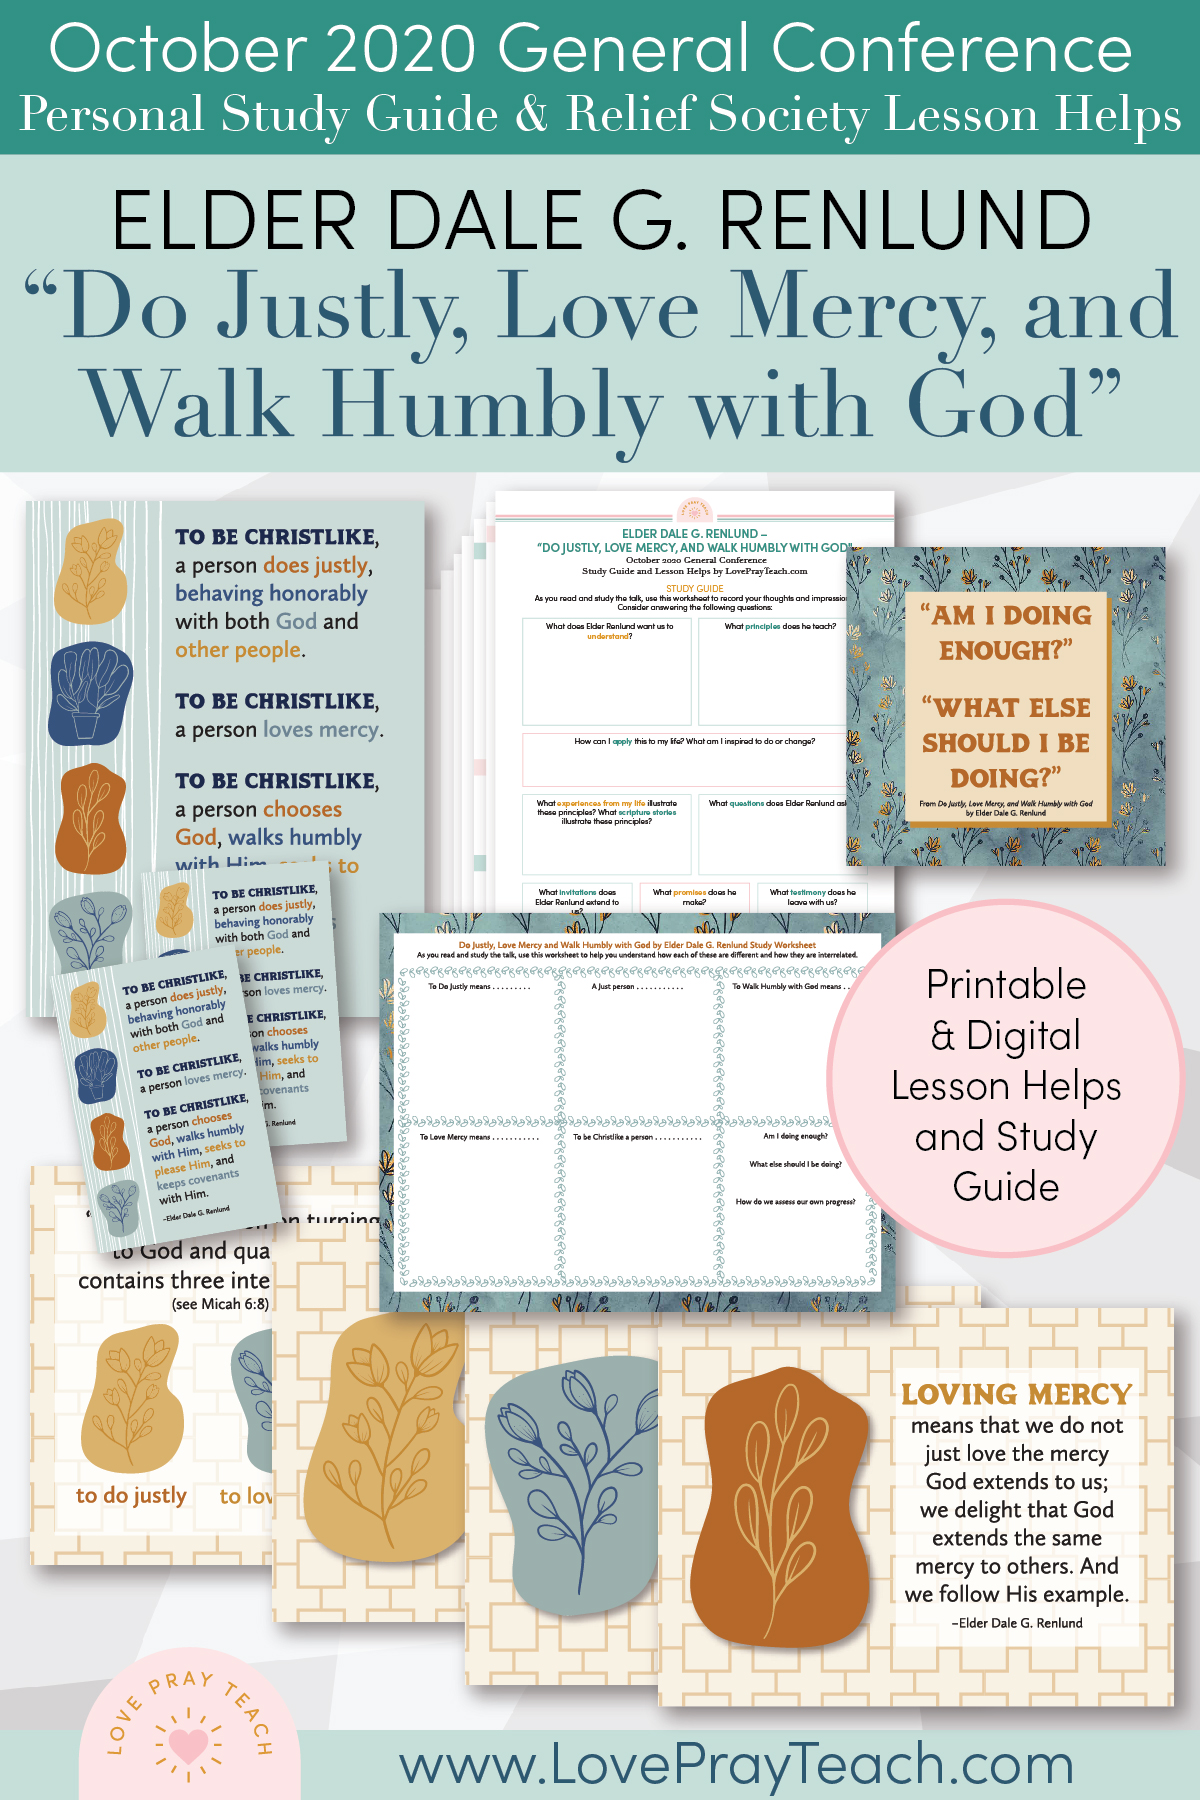 "October 2020 General Conference: Elder Dale G. Renlund - ""Do Justly, Love Mercy, and Walk Humbly with God"" Printable Study Guide and Lesson Helps for Relief Society"